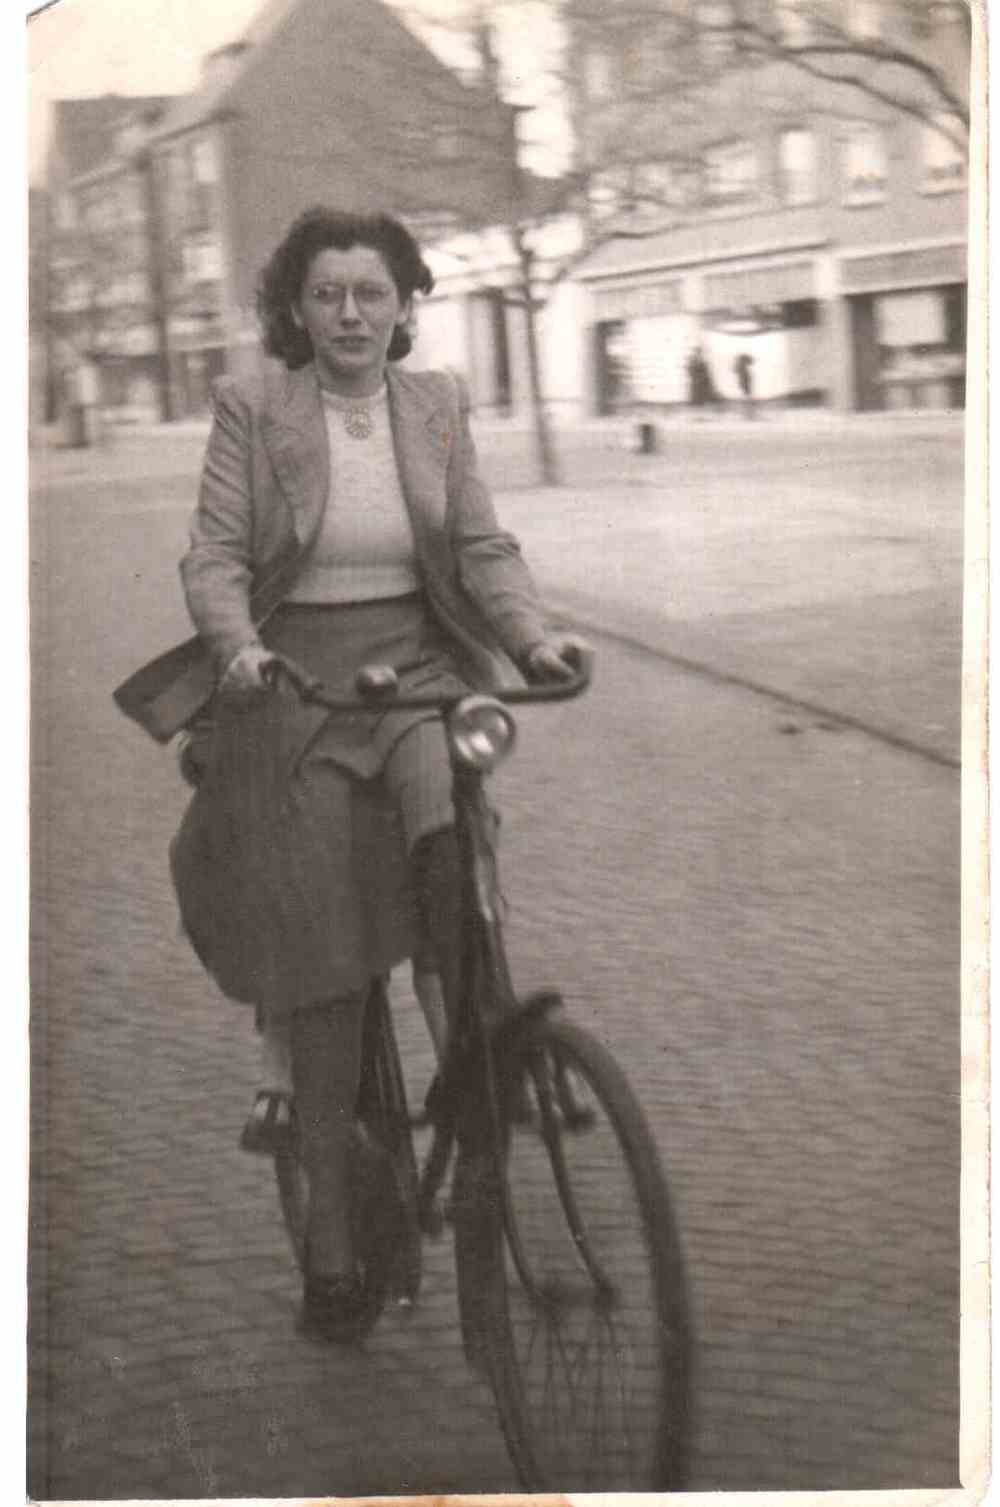 My beautiful grandmother on her bike in the Netherlands with my aunt riding with on the back.